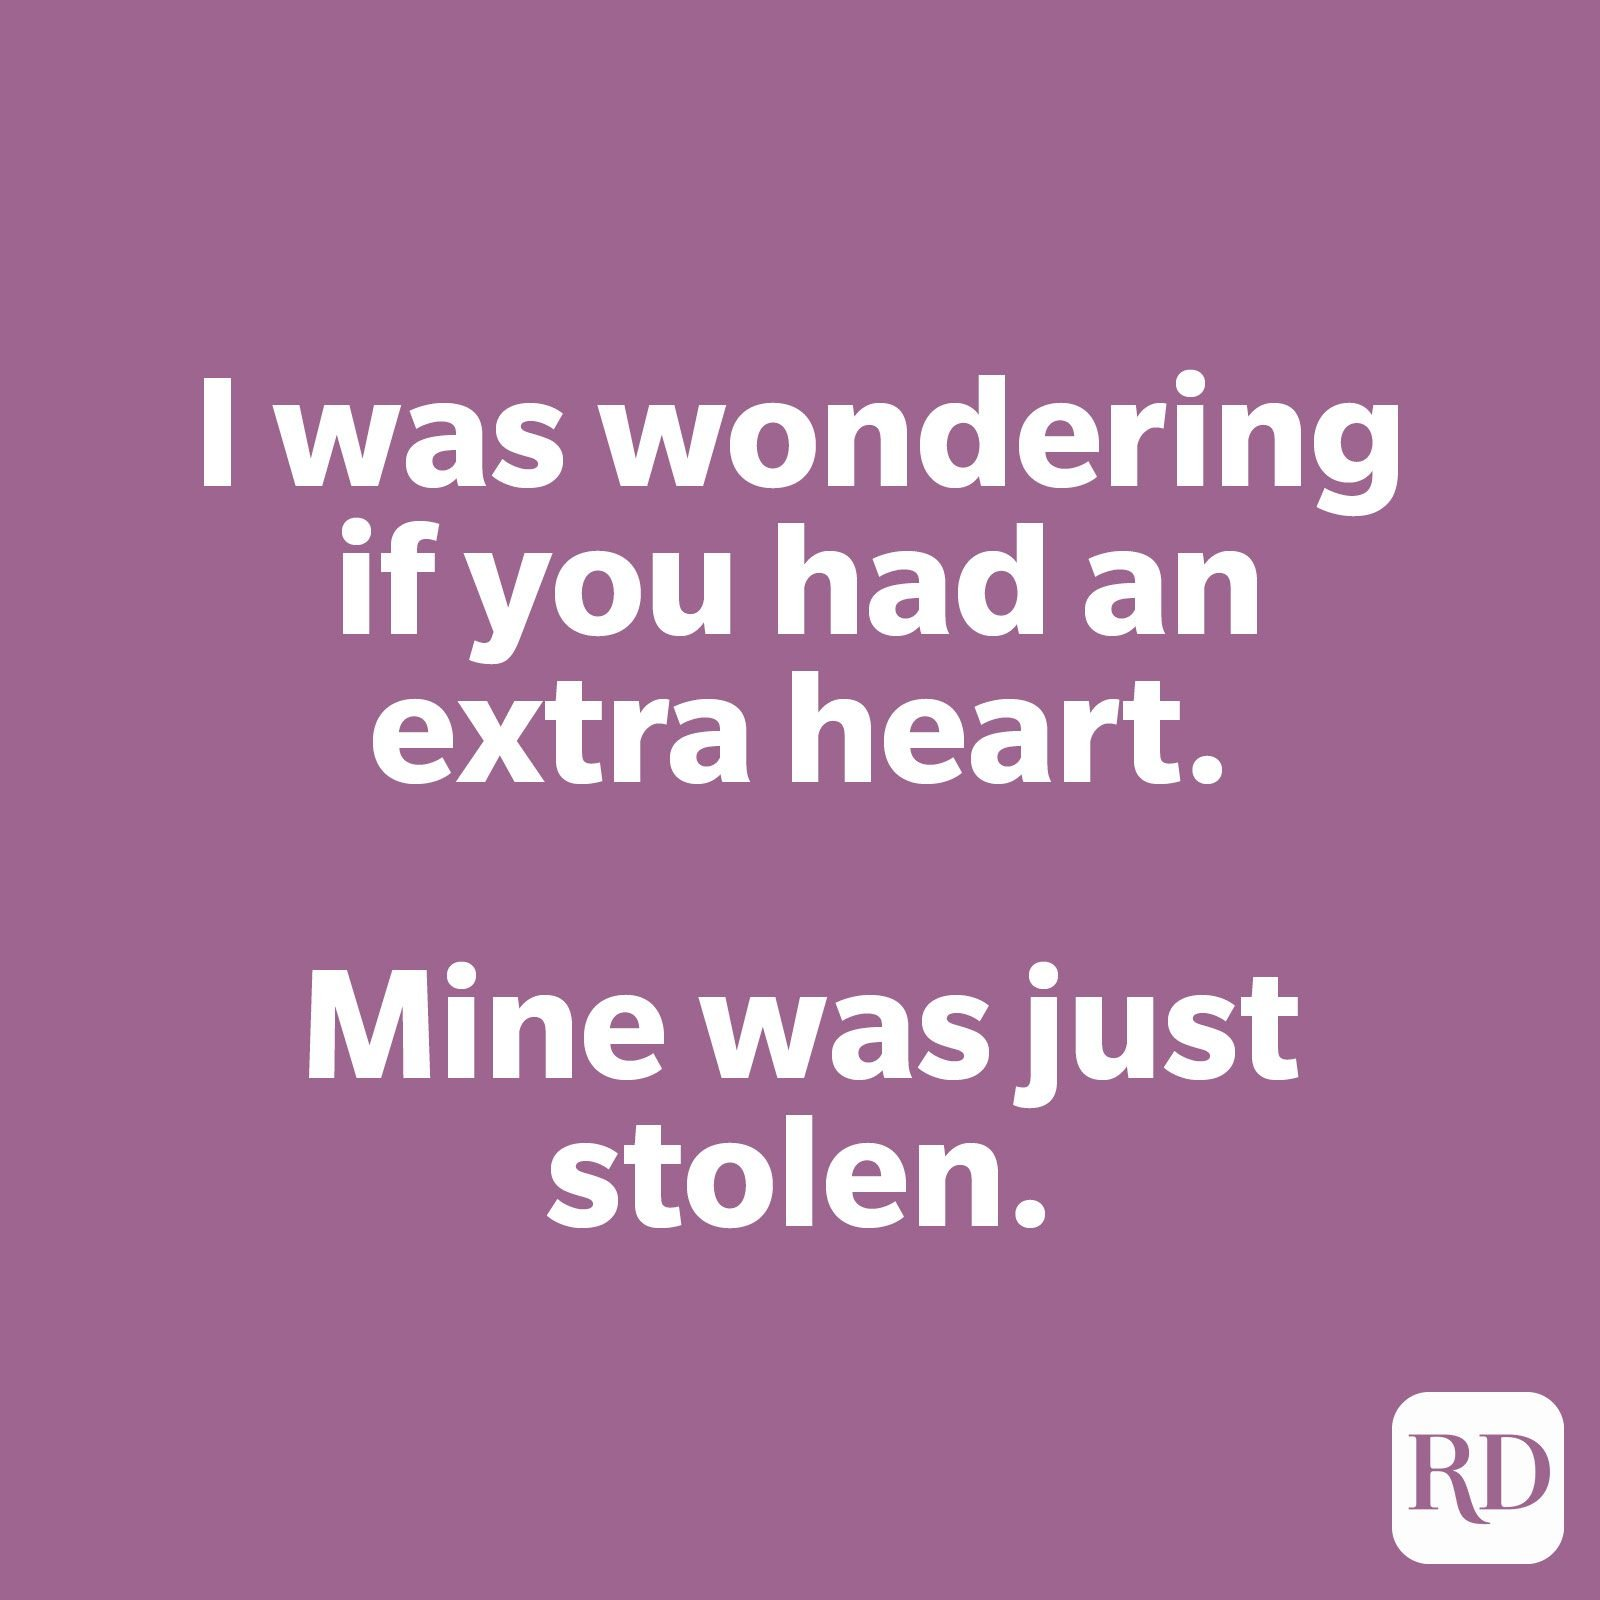 I was wondering if you had an extra heart. Mine was just stolen.